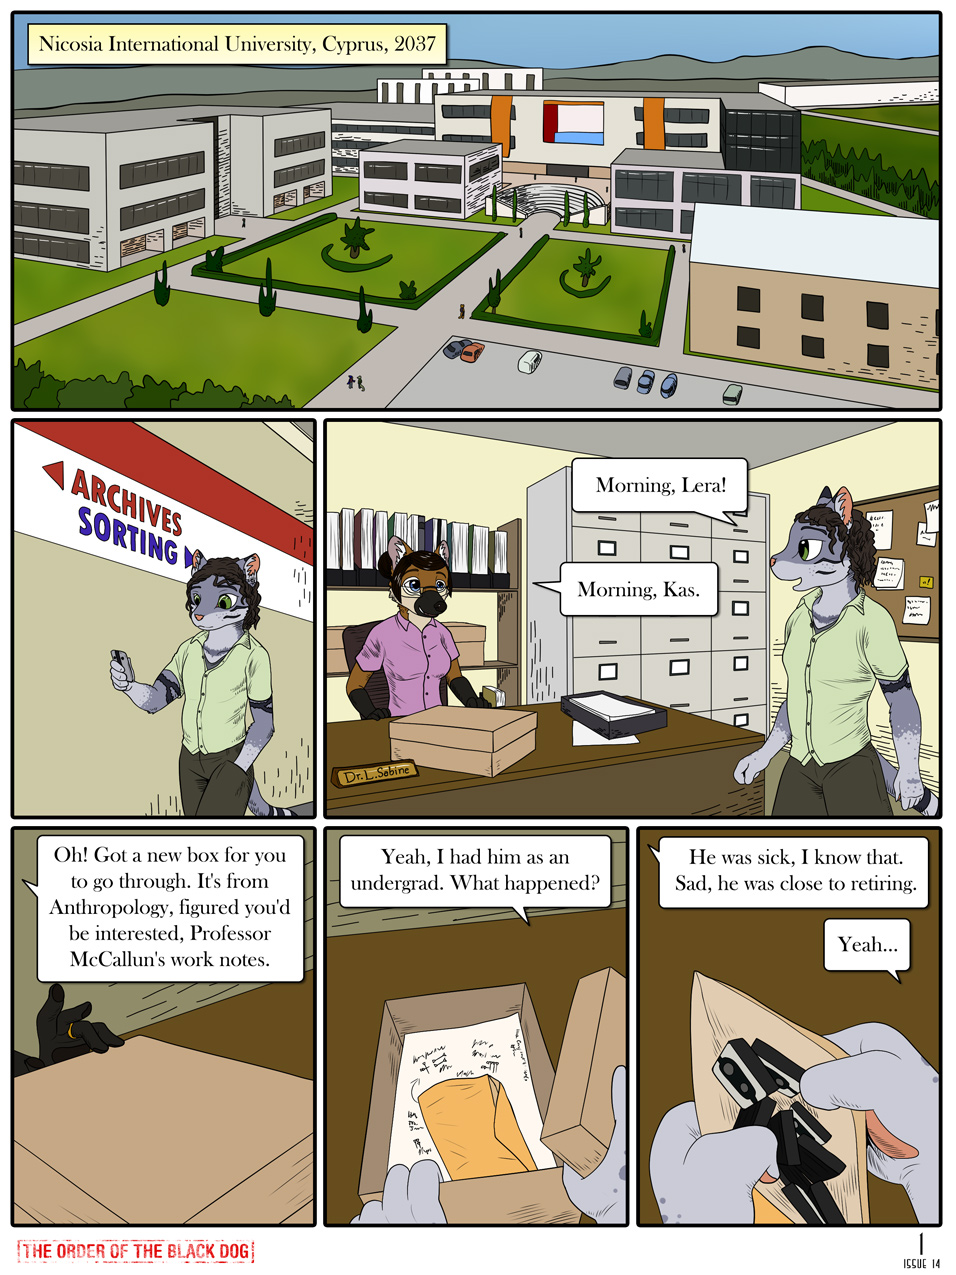 Issue 14, Page 1